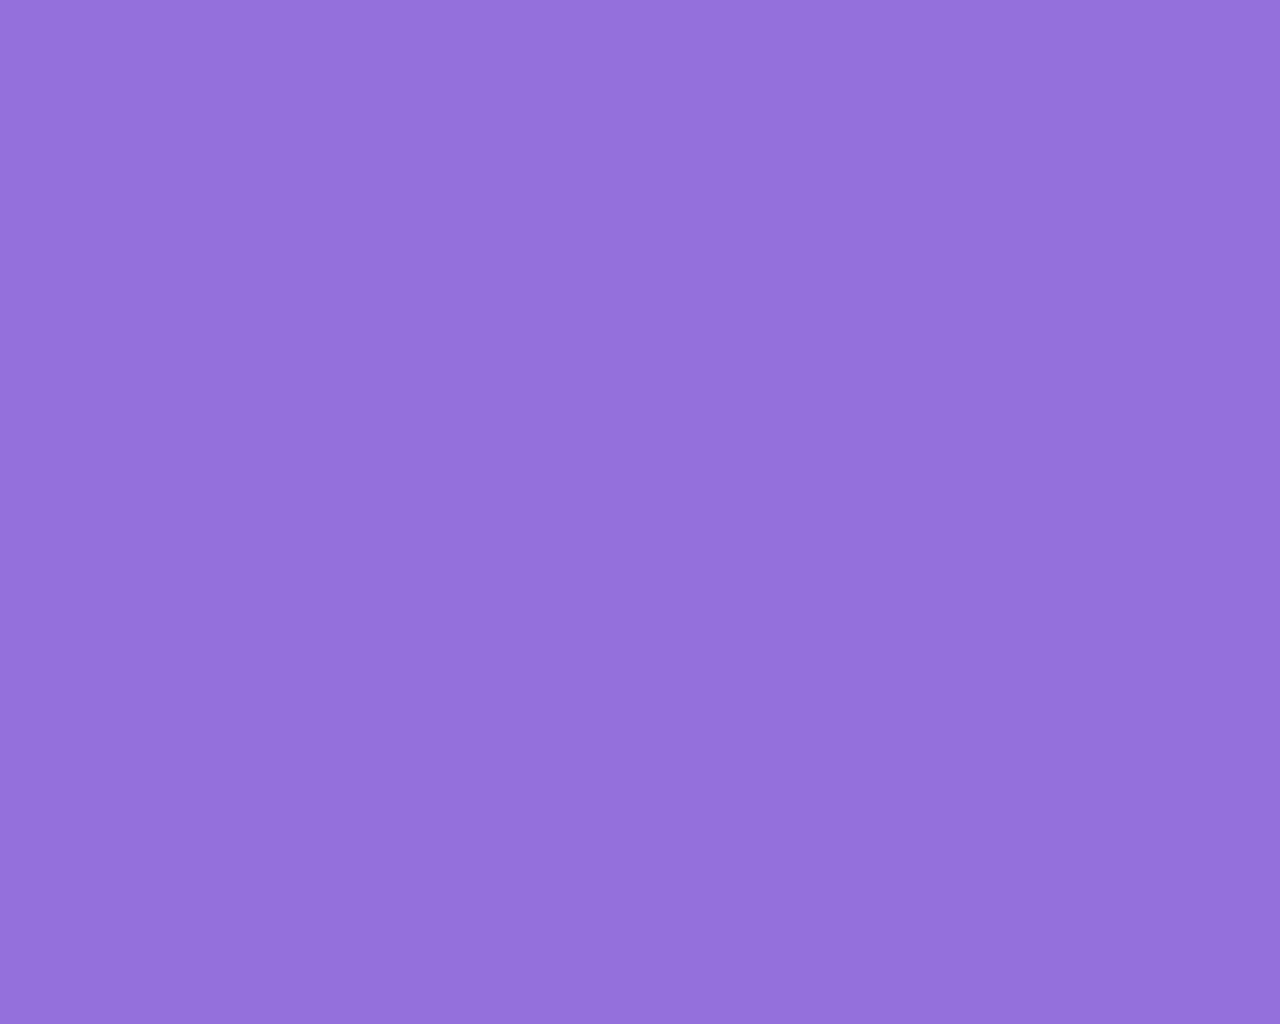 Solid Purple Wallpaper Another colorful solid purple wallpaper 1280x1024